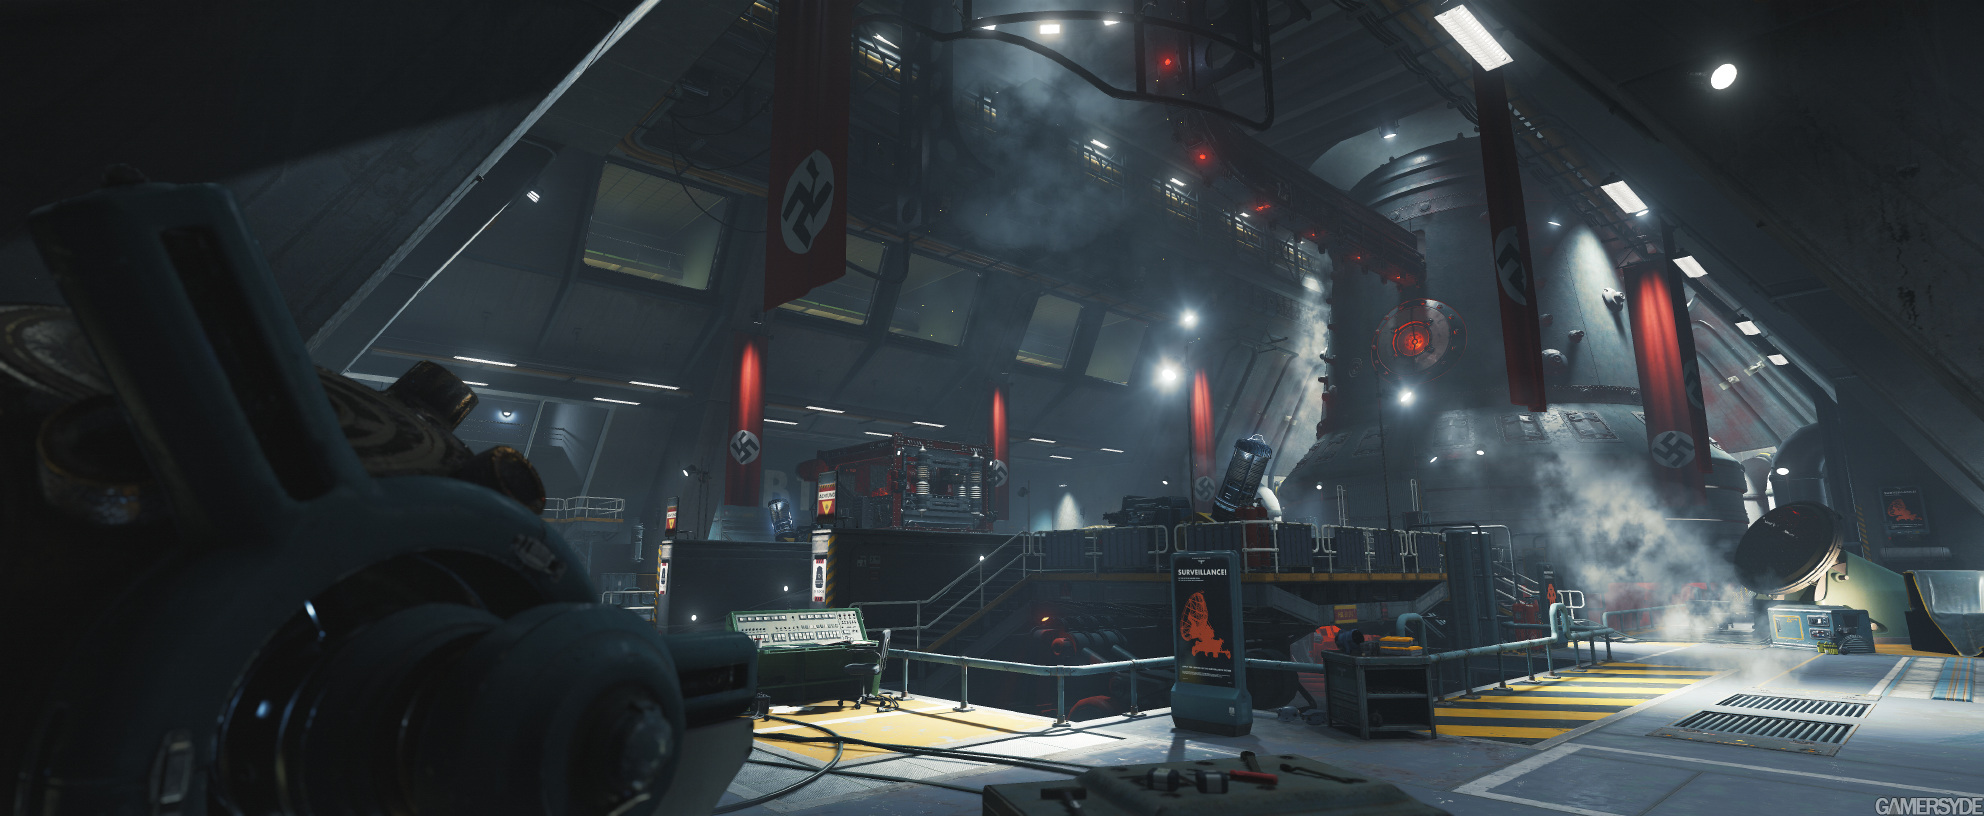 image_wolfenstein_ii_the_new_colossus-35